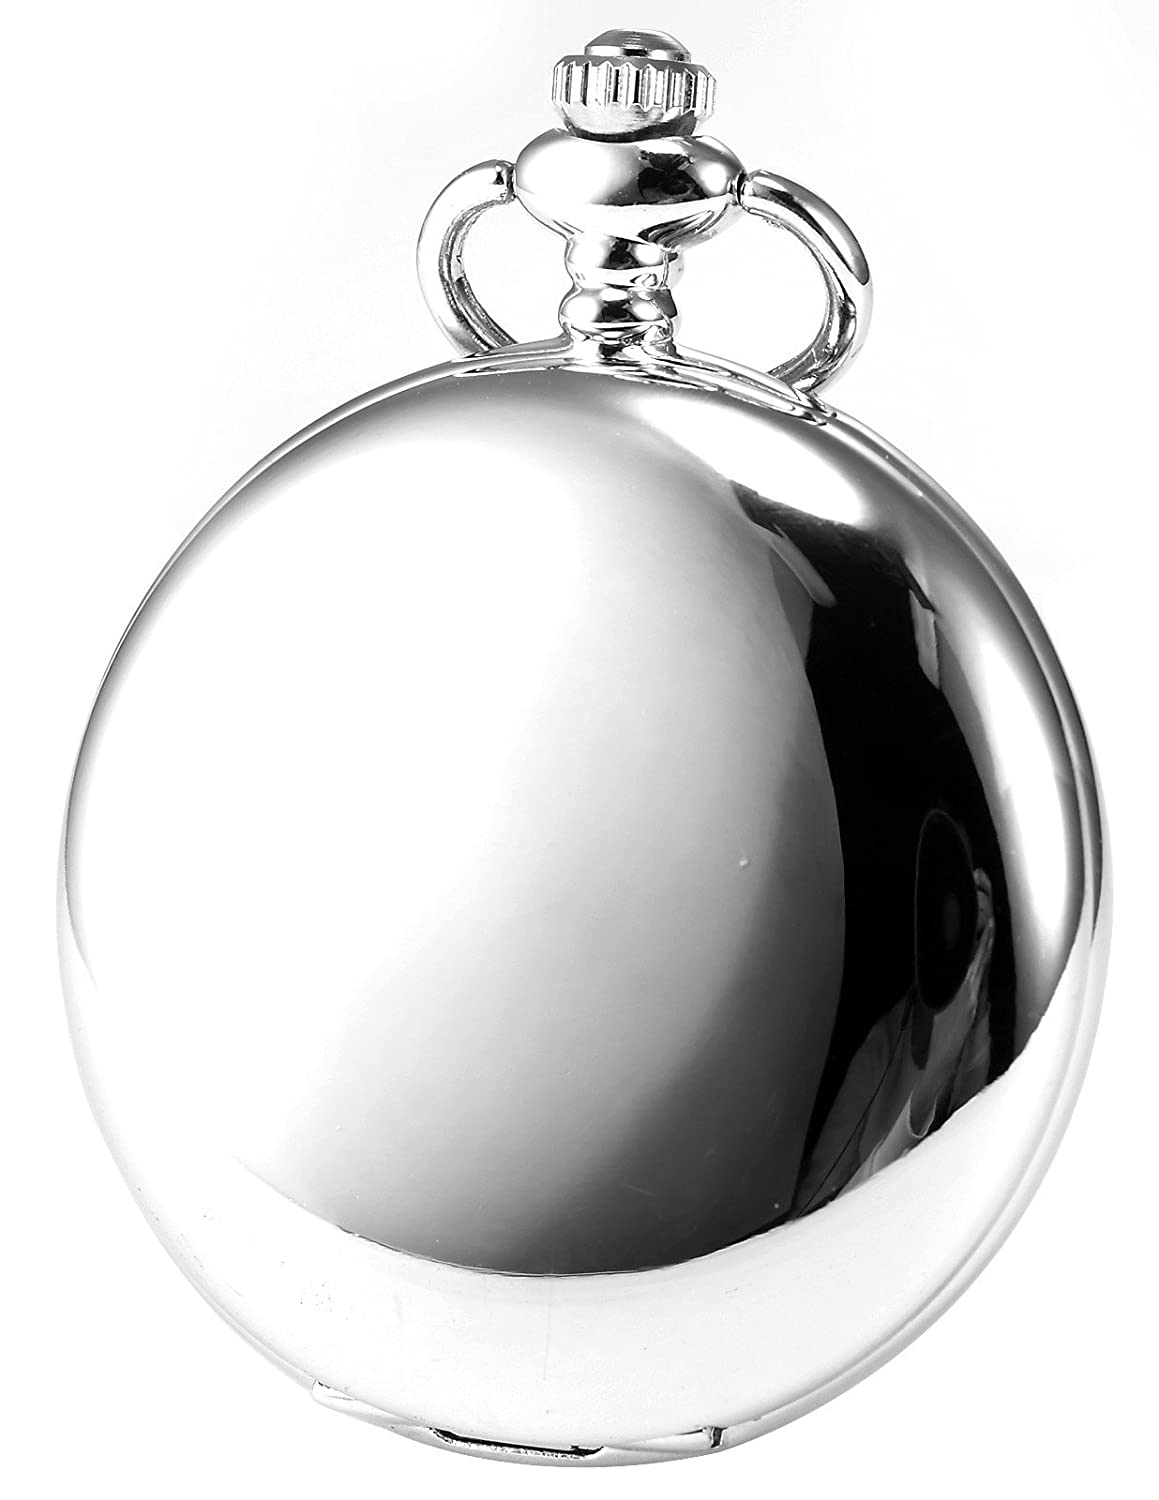 Amazon.com: AMPM24 Vintage Silver Mens Women Ladies Quartz Pendent Pocket Watch Clock Chain Gift WPK027: Watches